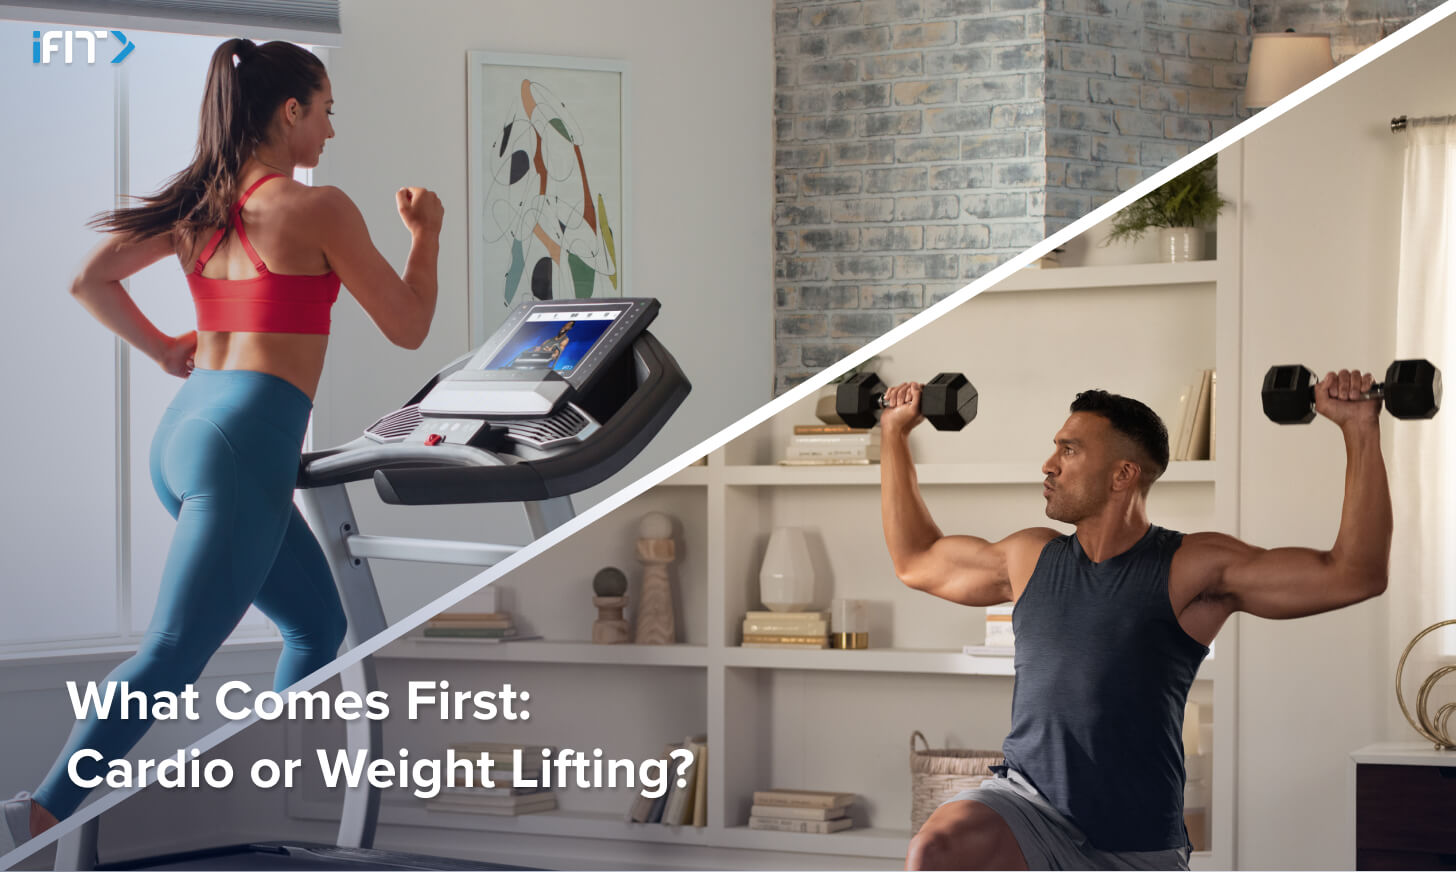 What comes first: cardio or weight lifting?